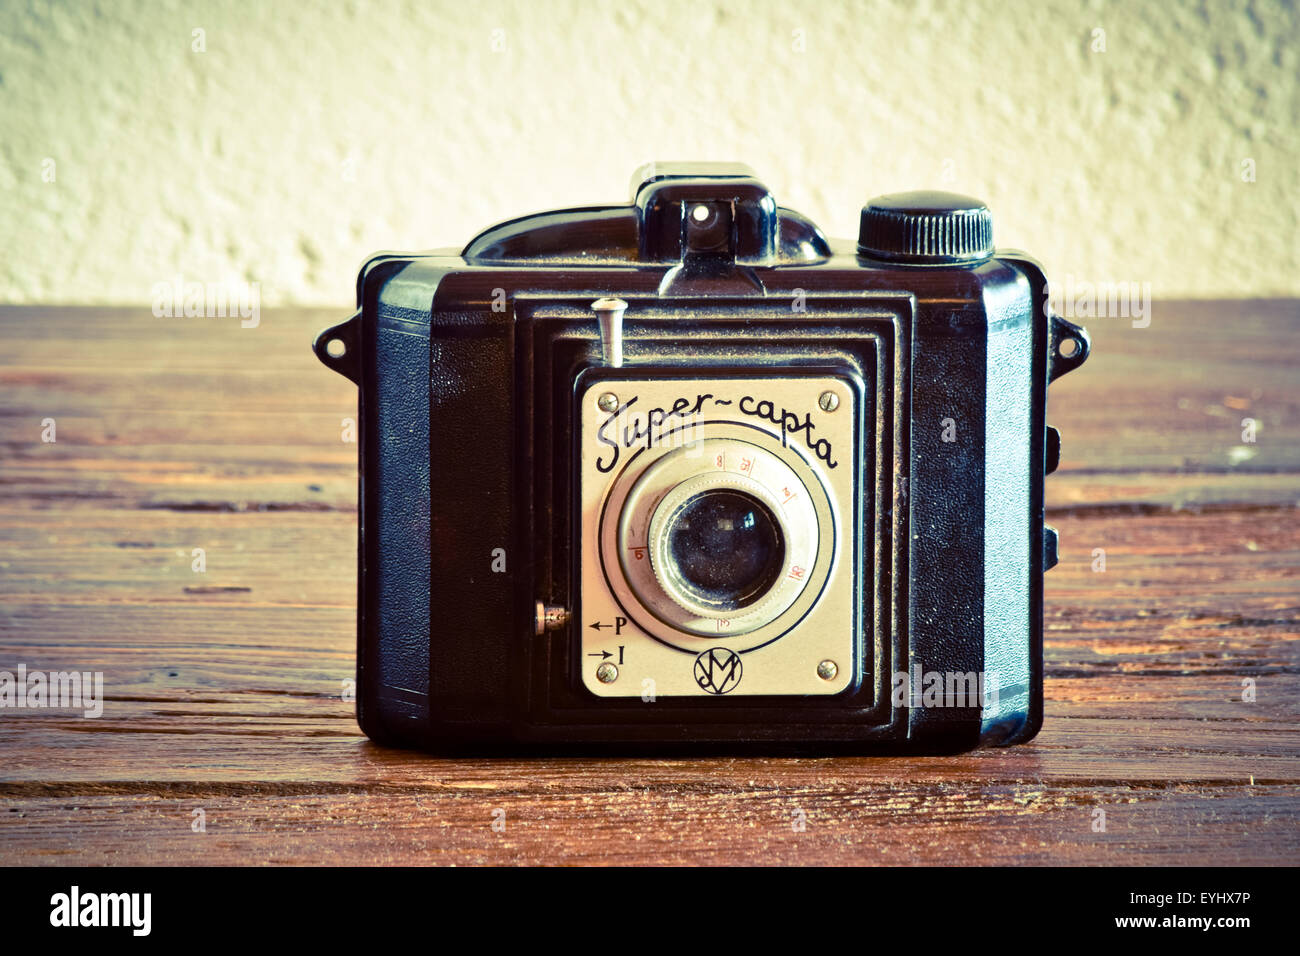 Old camera on wooden surface. - Stock Image